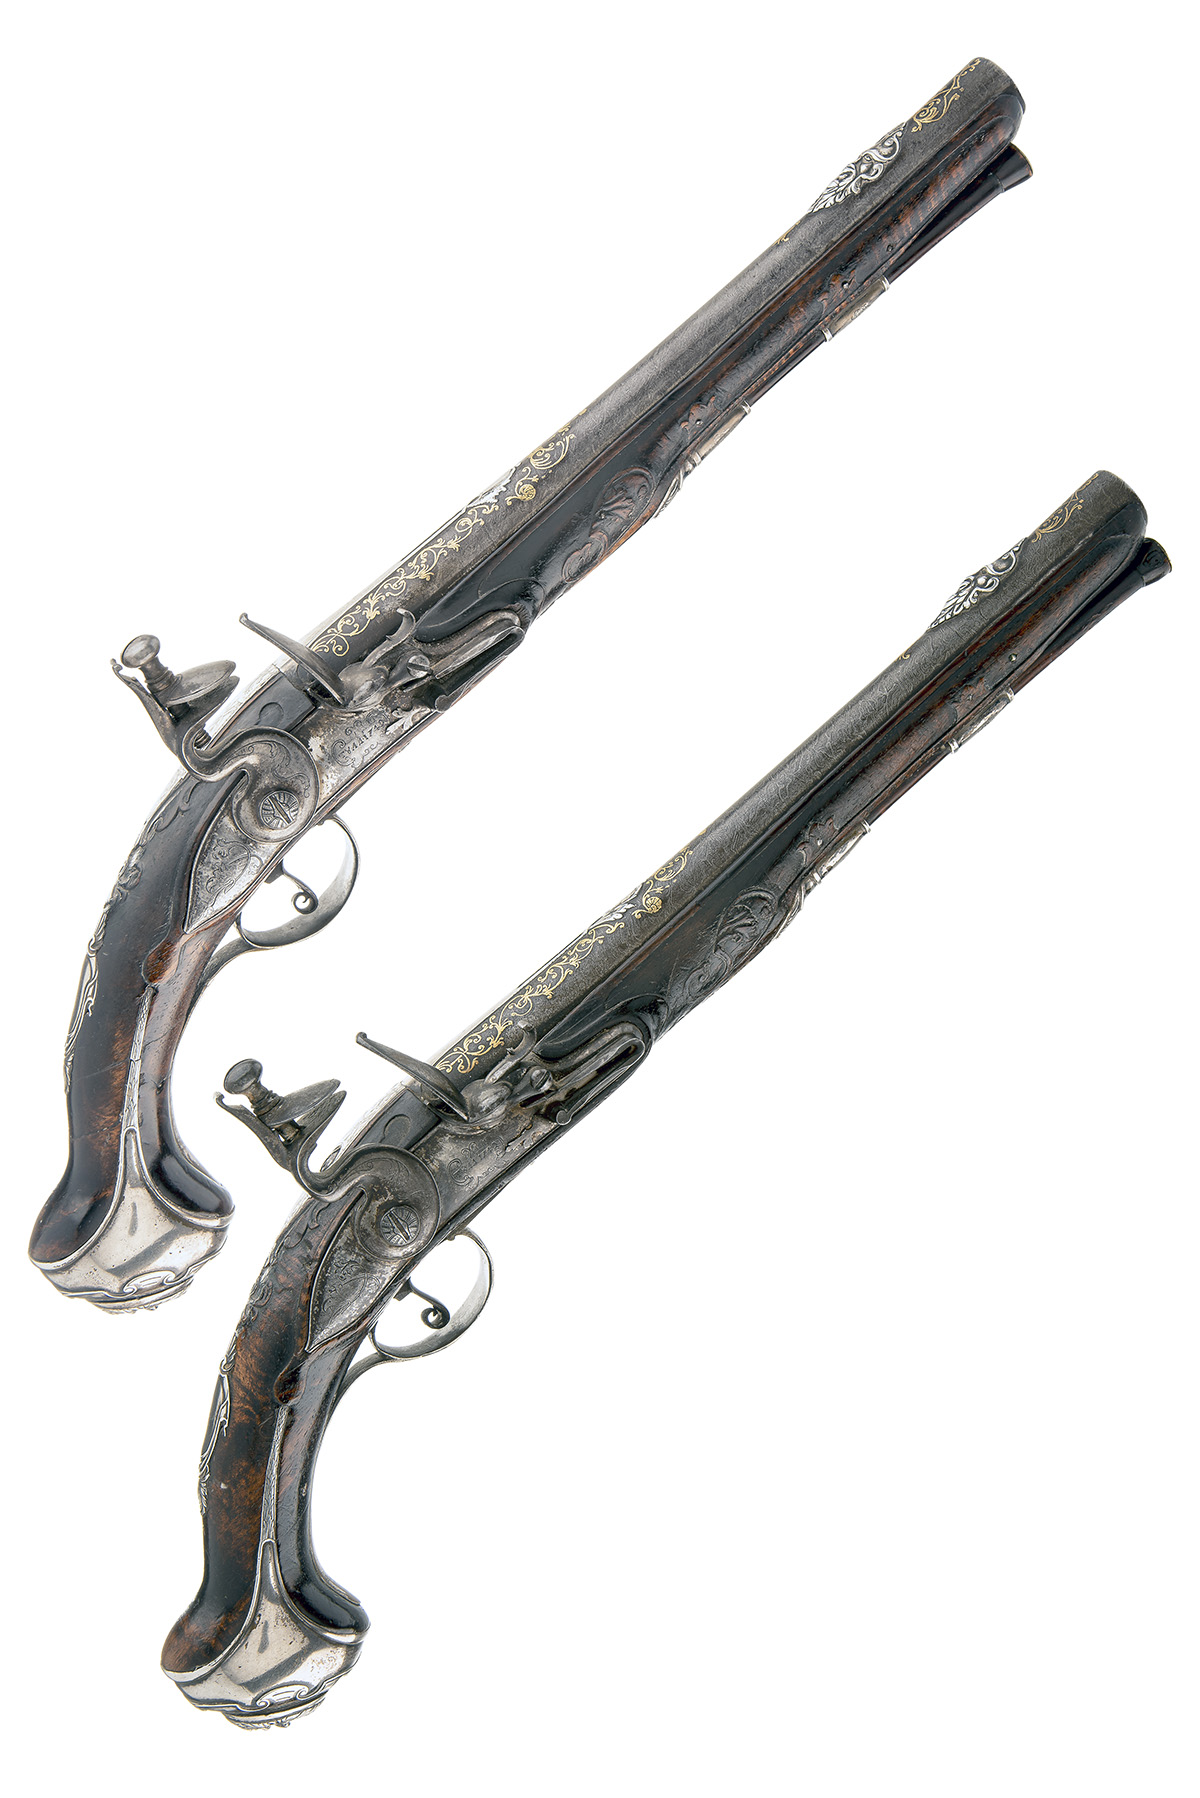 TULA ARSENAL, RUSSIA A MAGNIFICENT PAIR OF 16-BORE FLINTLOCK SILVER & GILT-MOUNTED HOLSTER